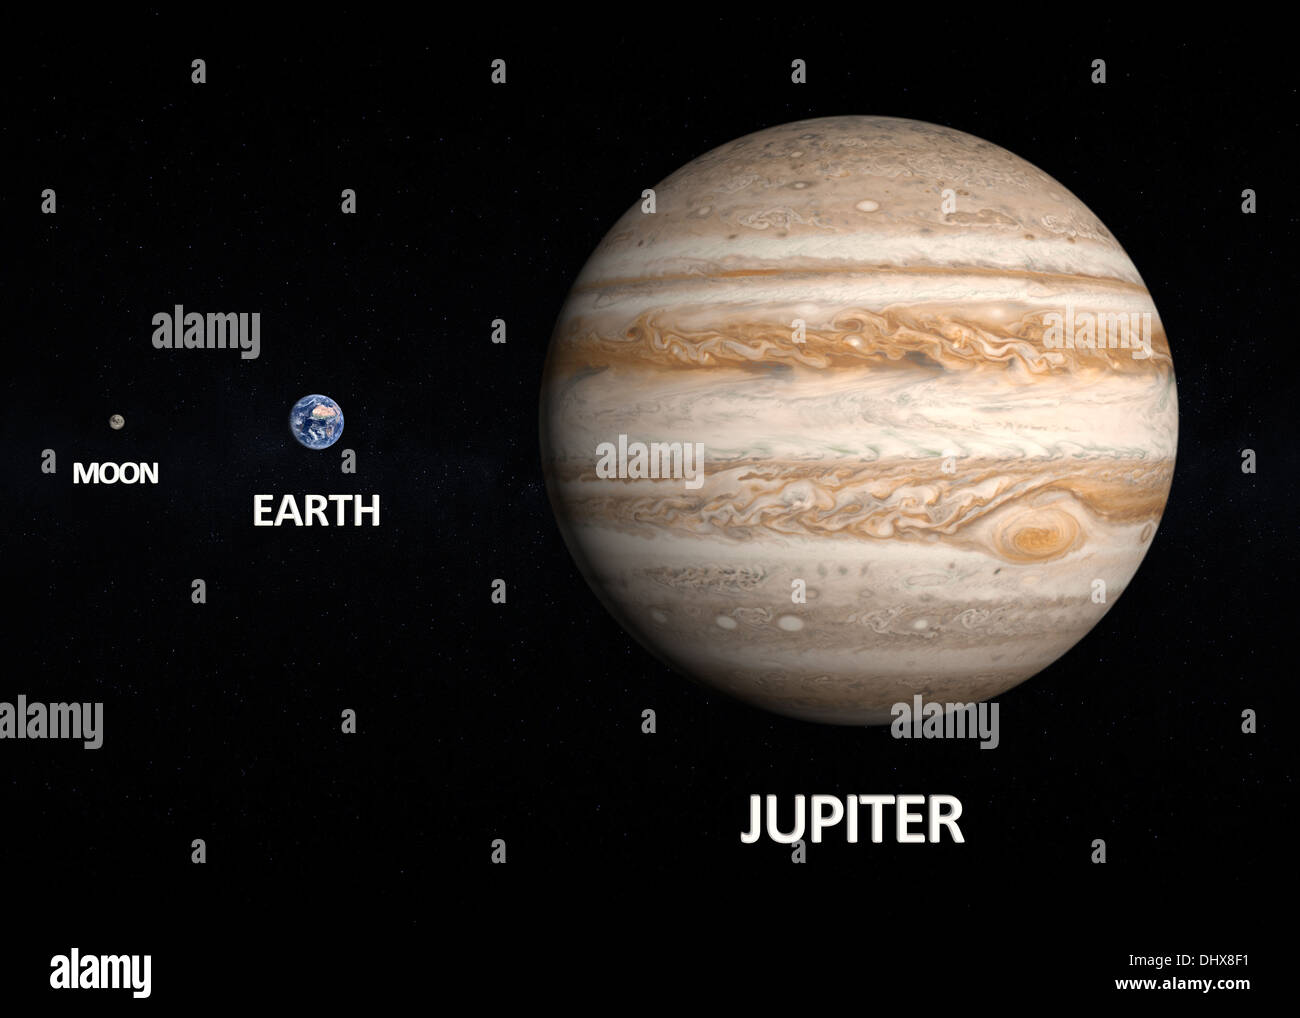 planets between moon and earth - photo #17